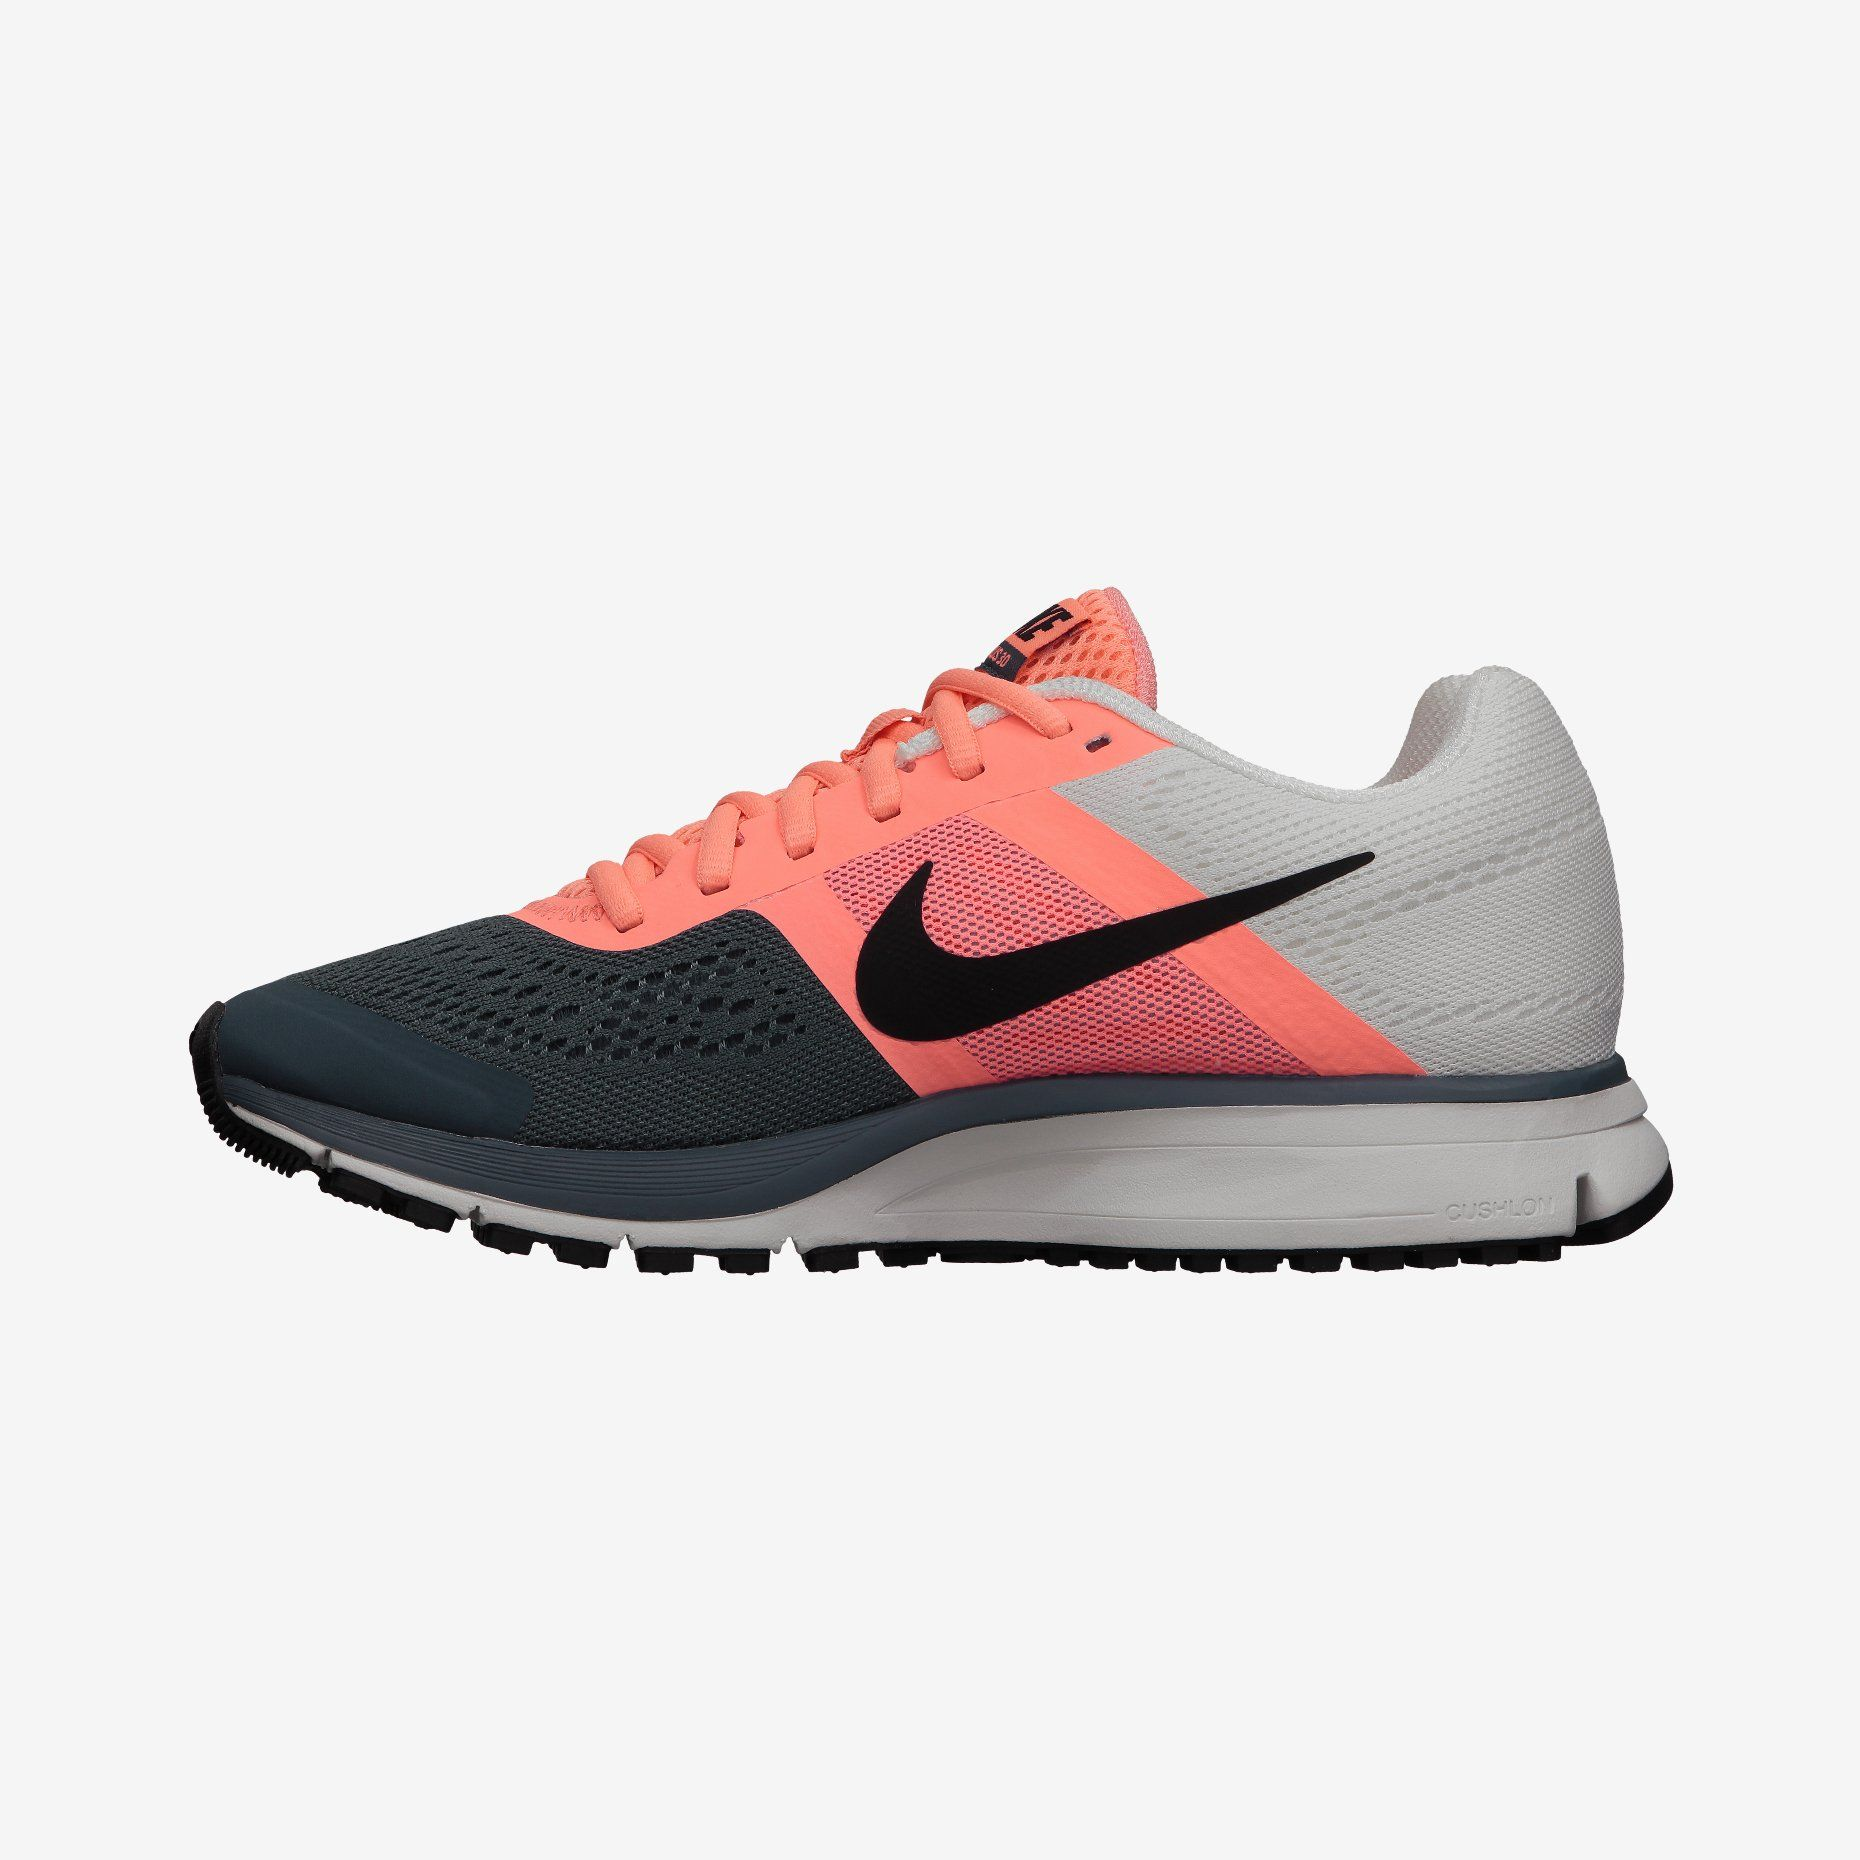 the best attitude c1d6c cc87f Nike Store. Nike Air Pegasus 30 Womens Running Shoe